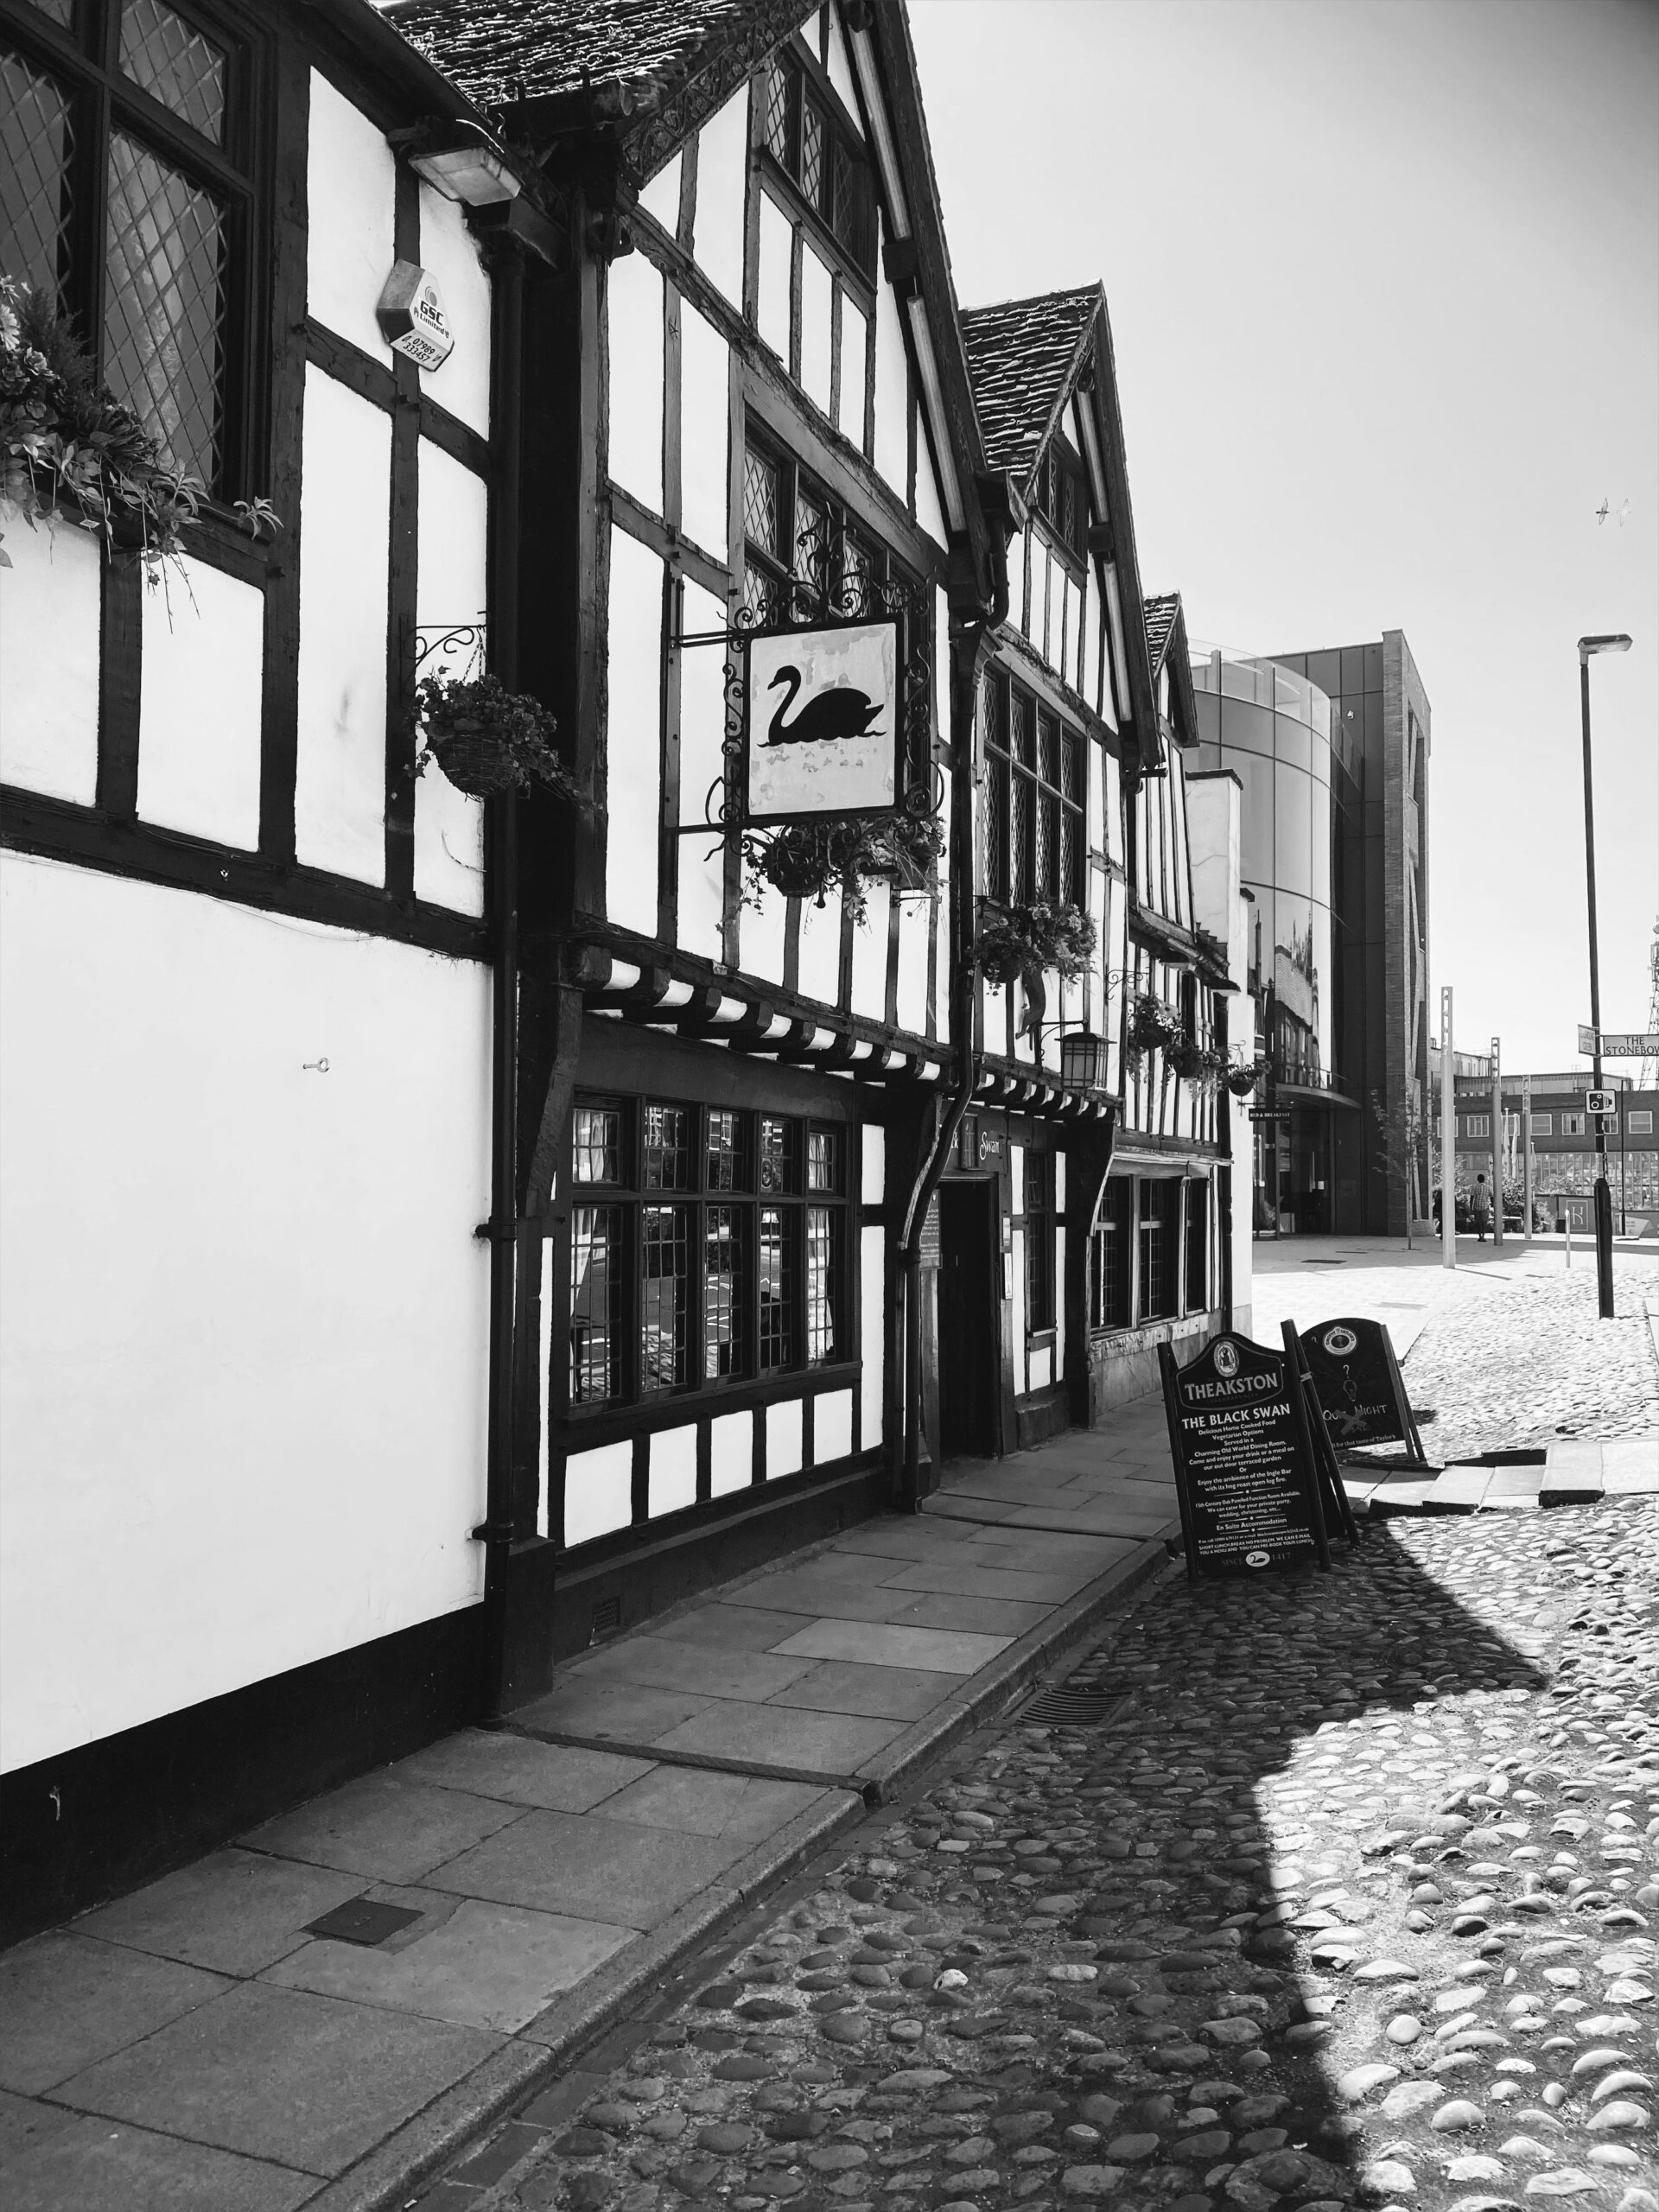 The Black Swan Ghost Hunt,York Thumbnail Image